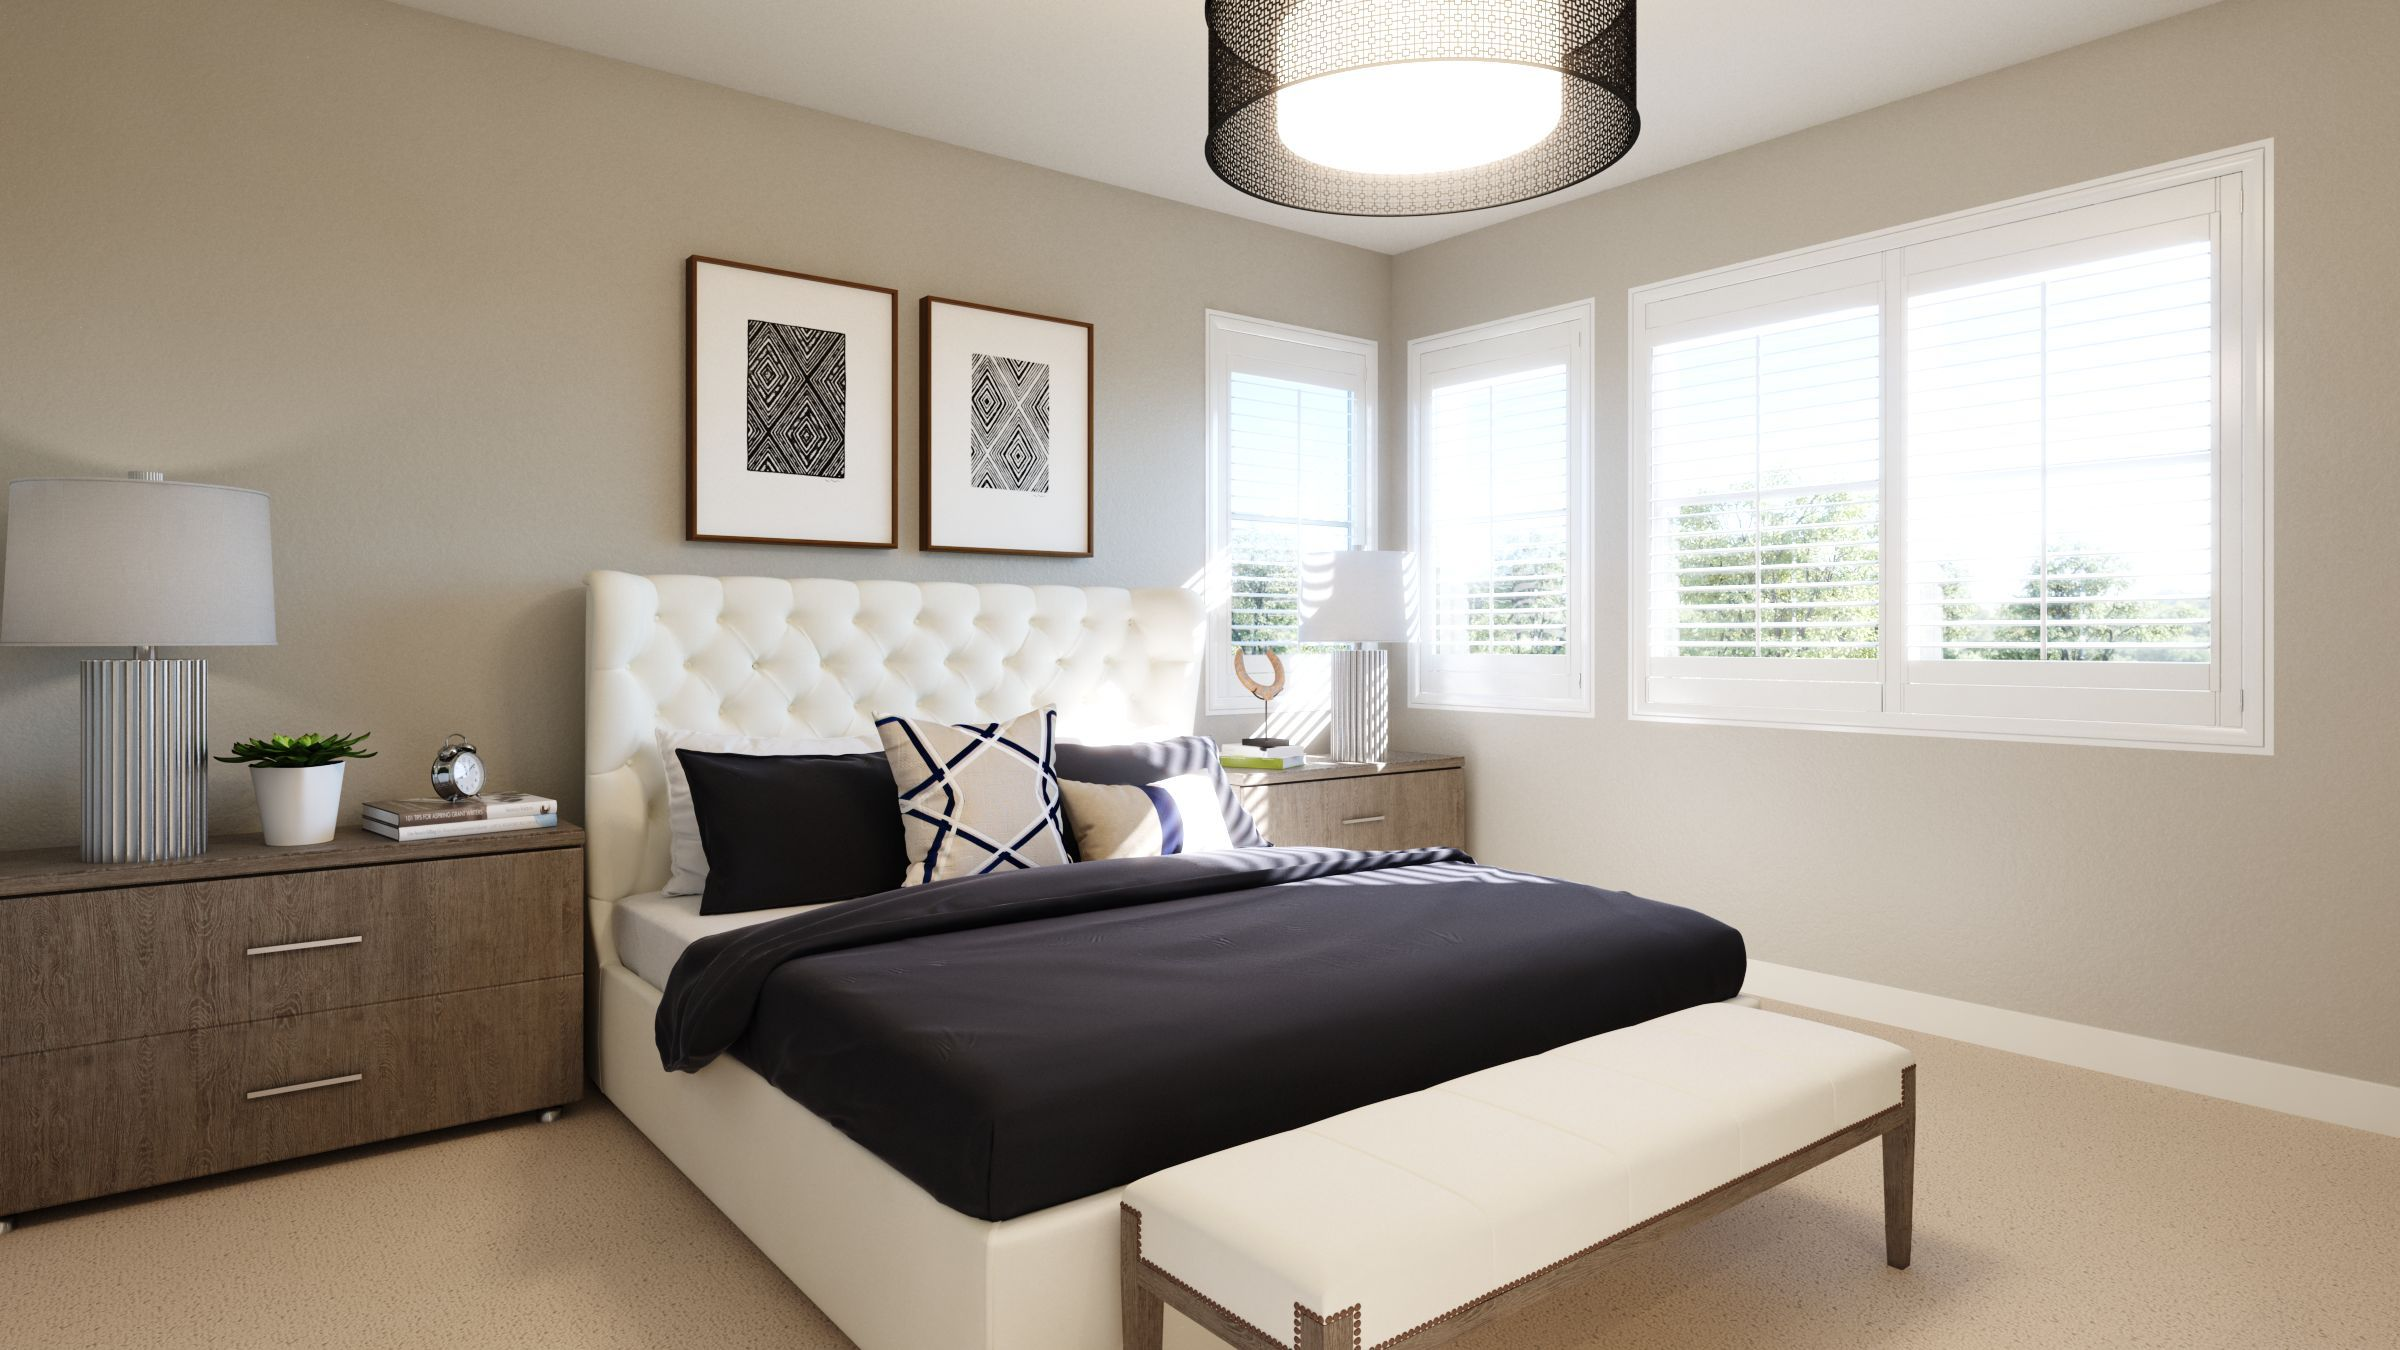 Bedroom featured in the Residence 9 By G3 Urban in Los Angeles, CA